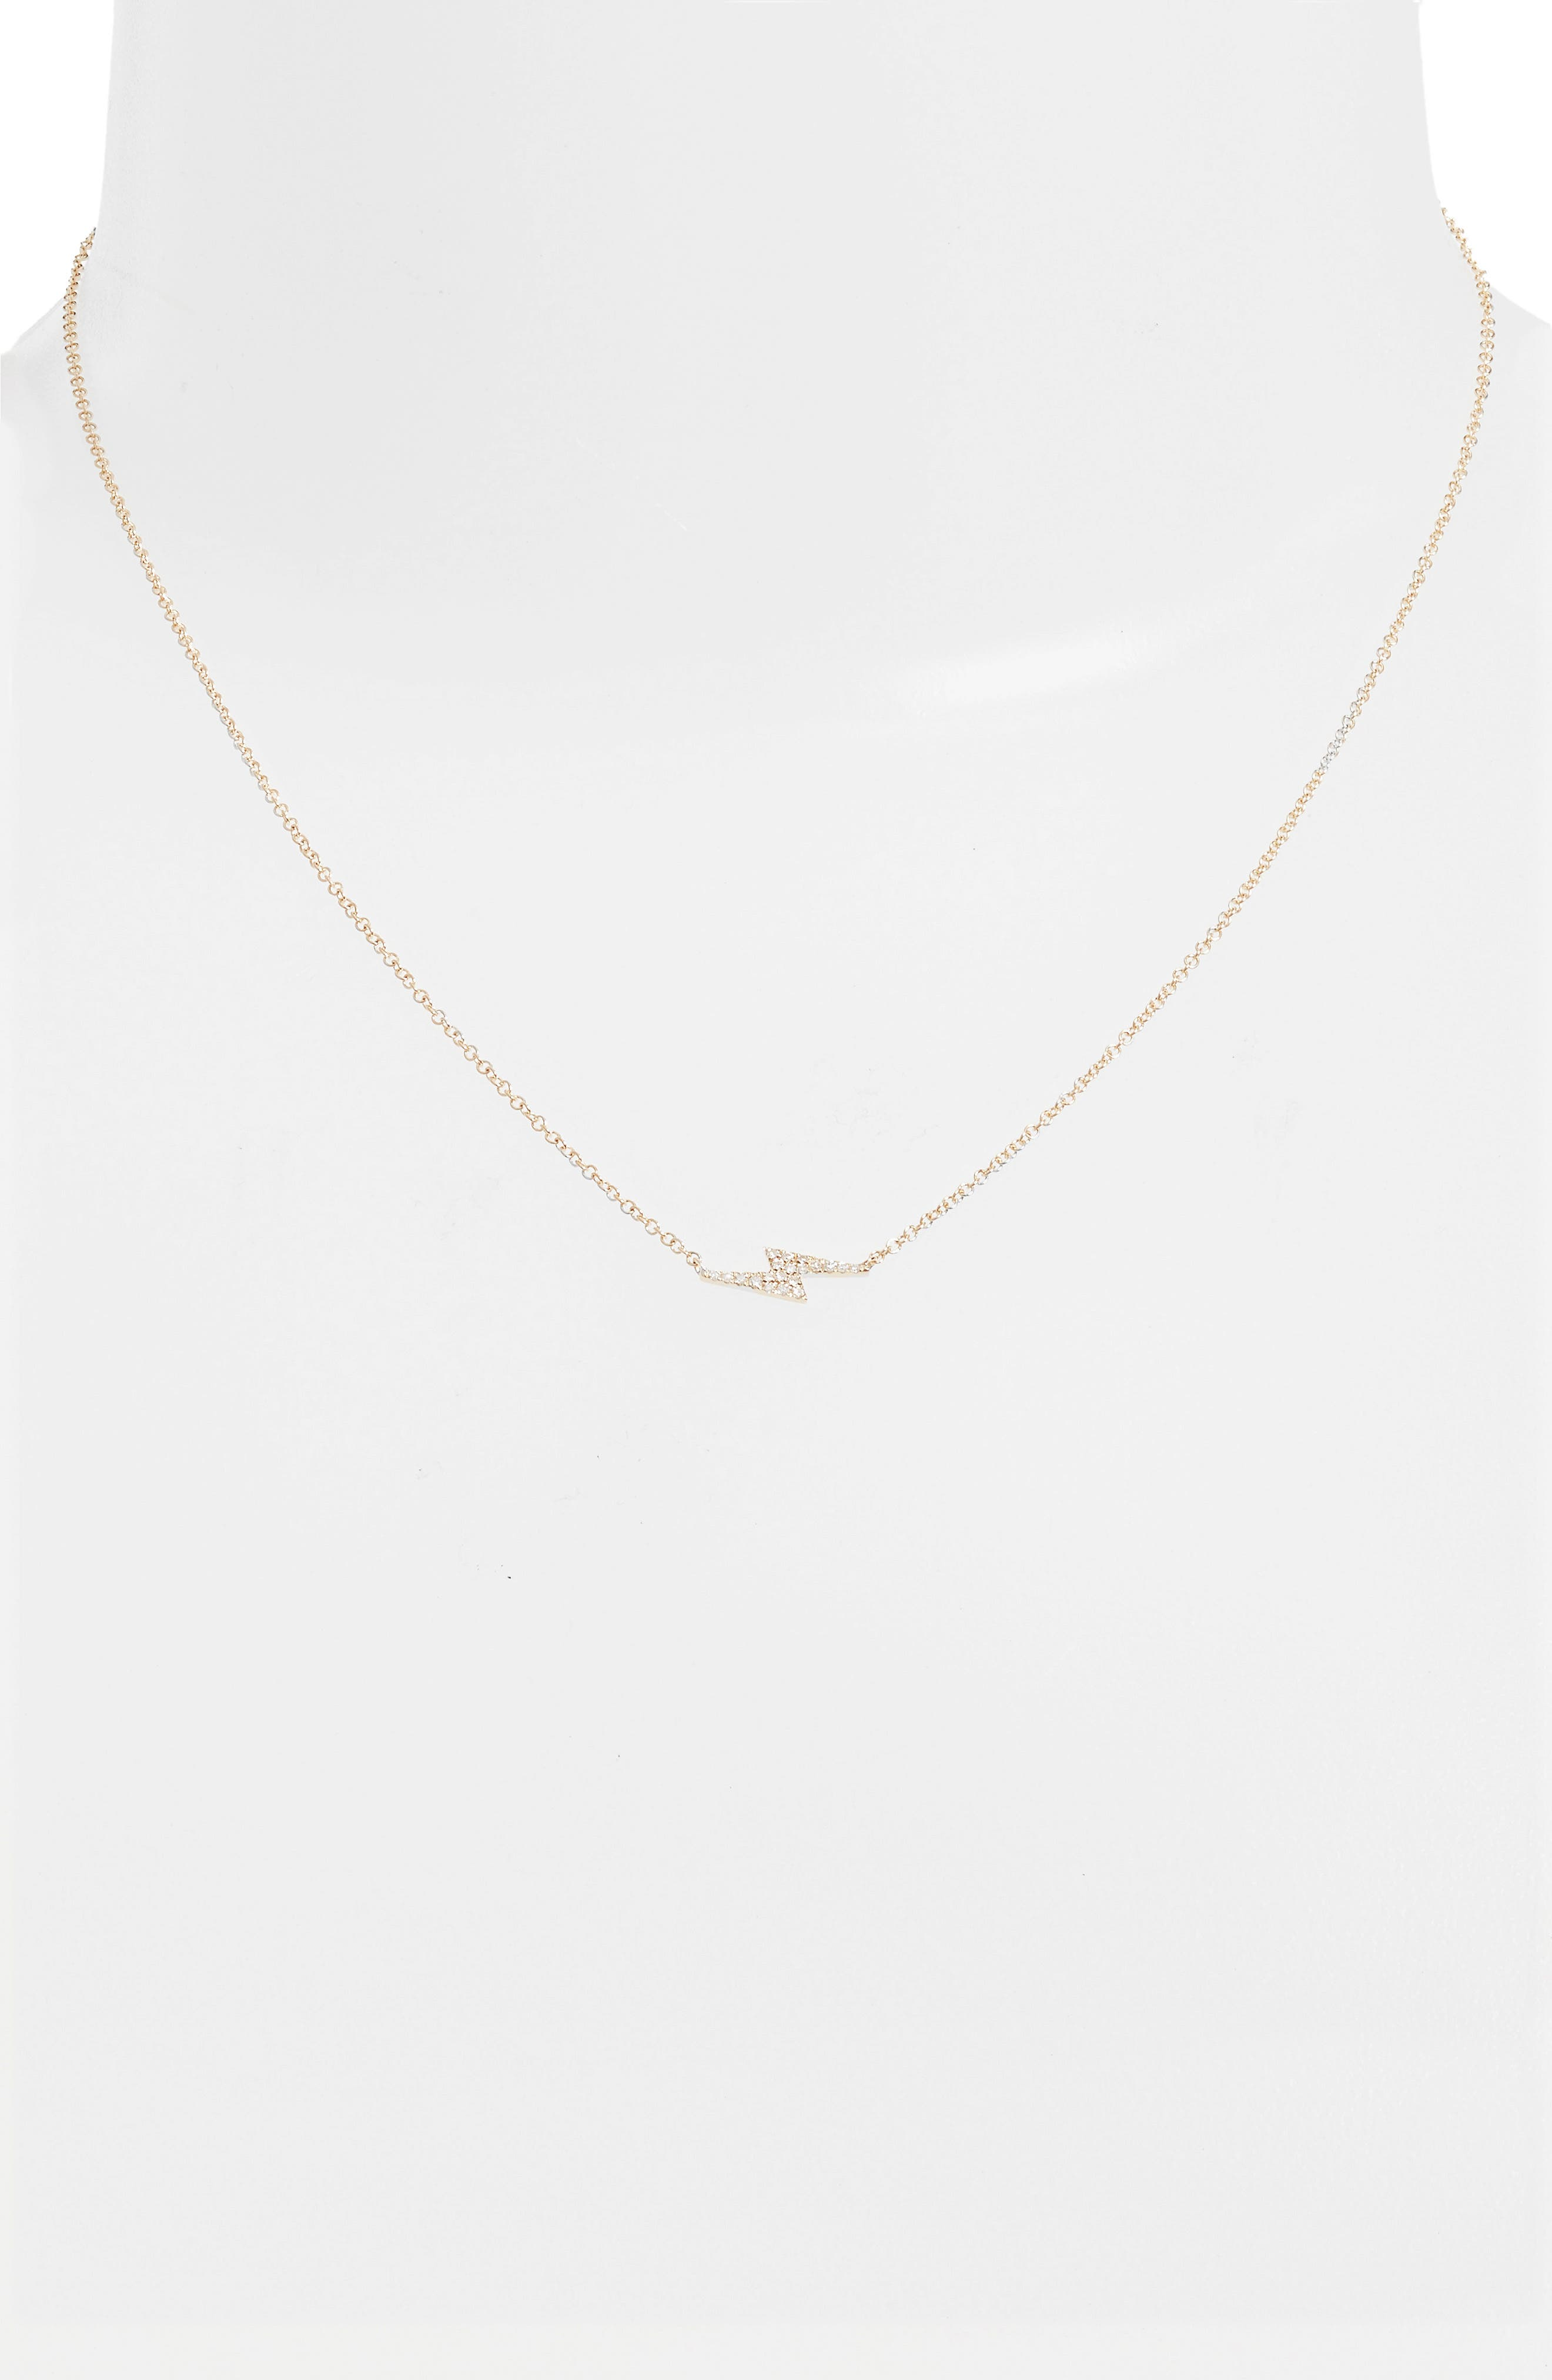 Diamond Lightning Bolt Pendant Necklace,                             Alternate thumbnail 2, color,                             YELLOW GOLD